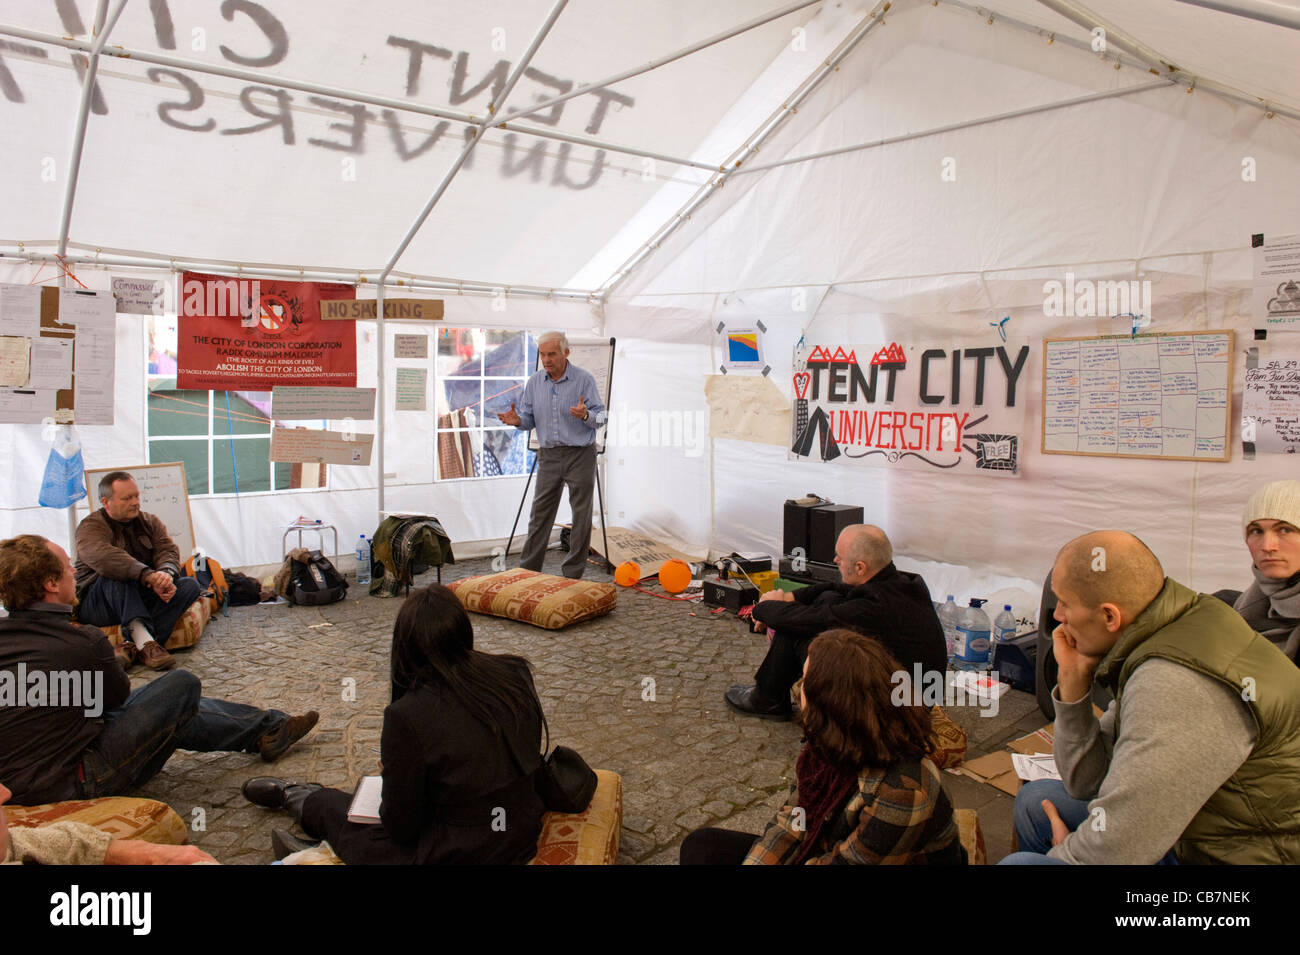 St Paul's Cathedral Tent City University Occupy London anti capitalist demonstrators protesters activists lecture - Stock Image